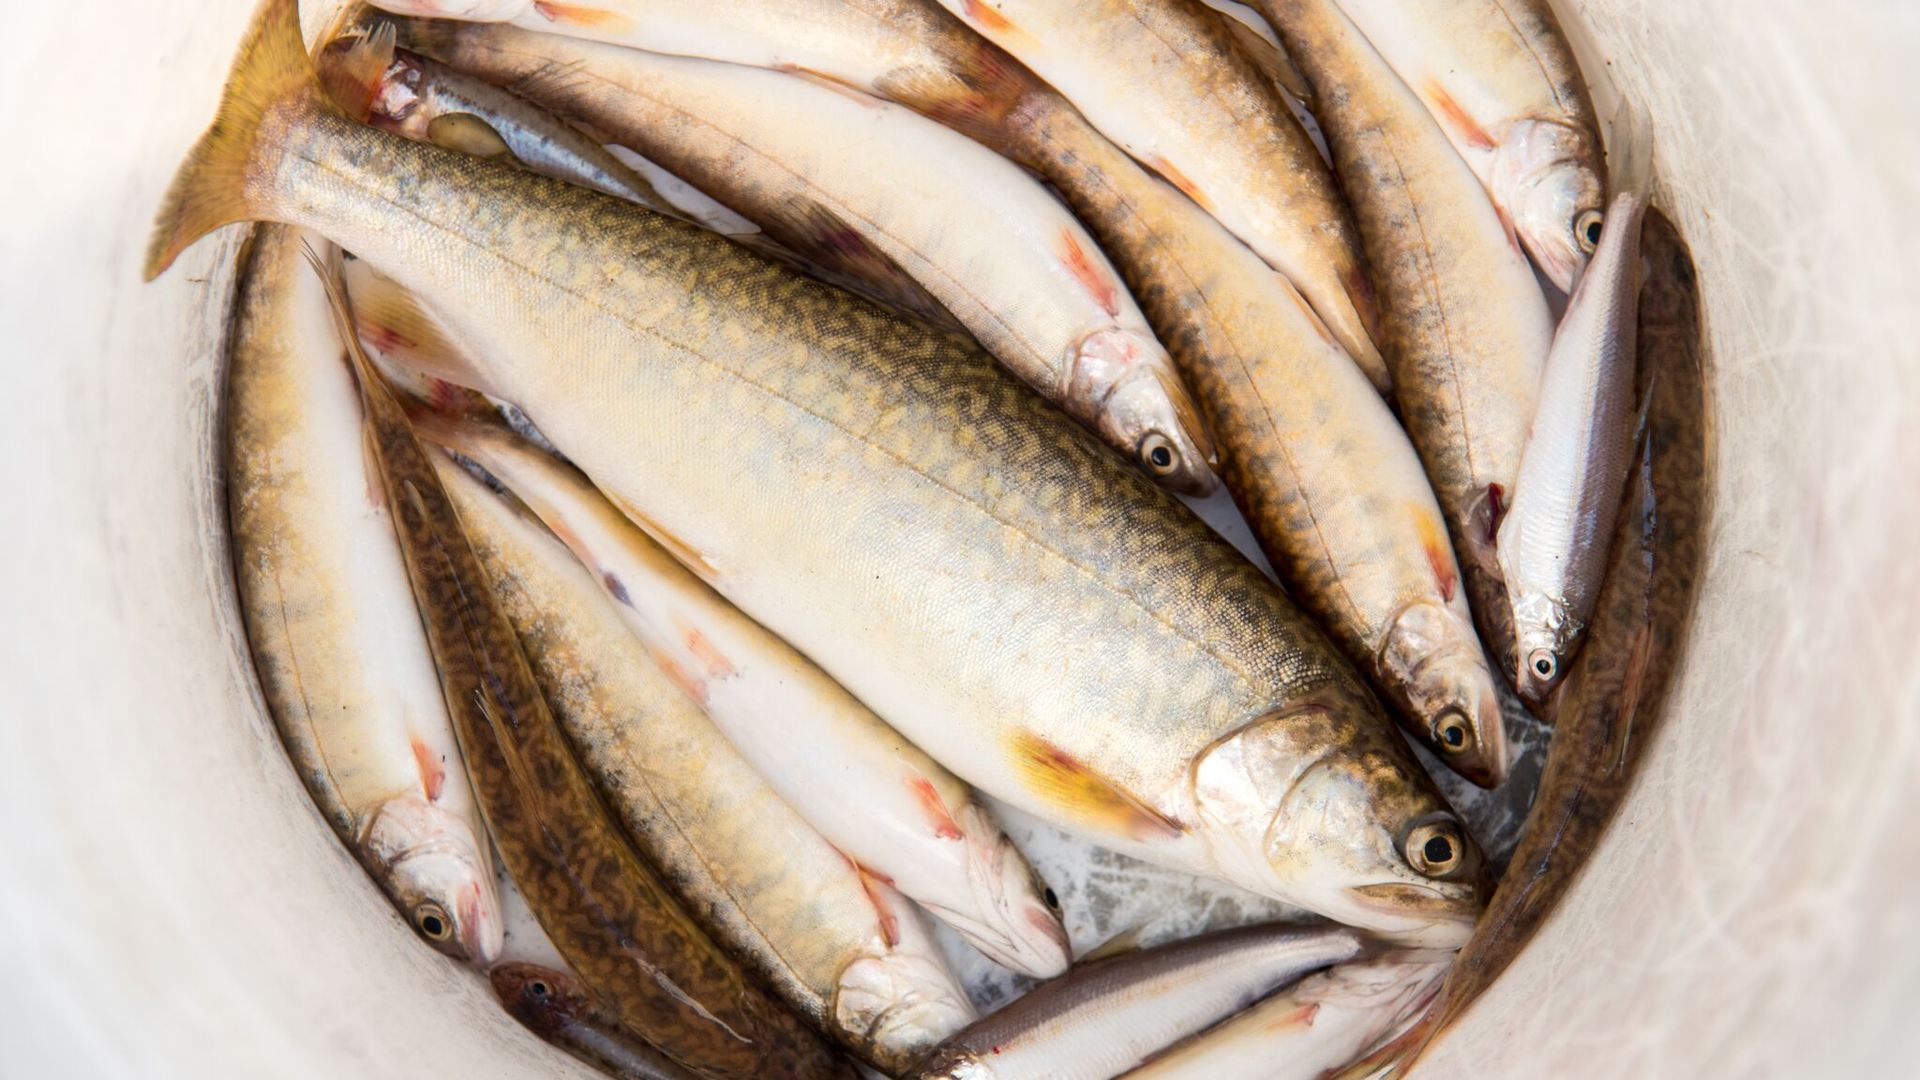 Trout in a bucket.